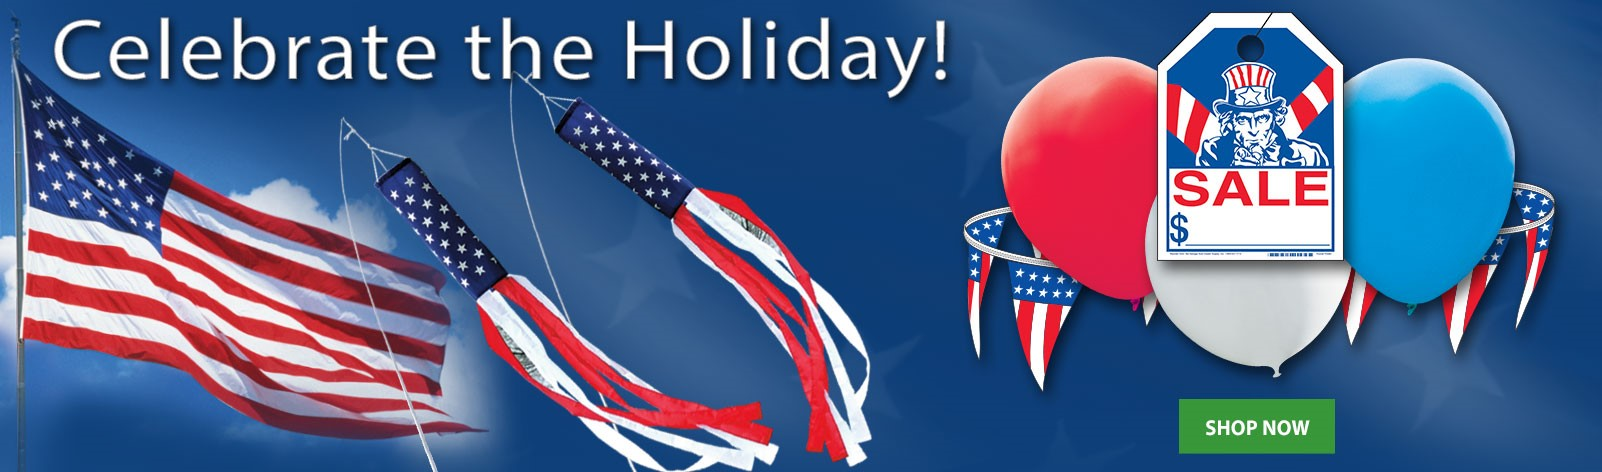 Celebrate the holiday!